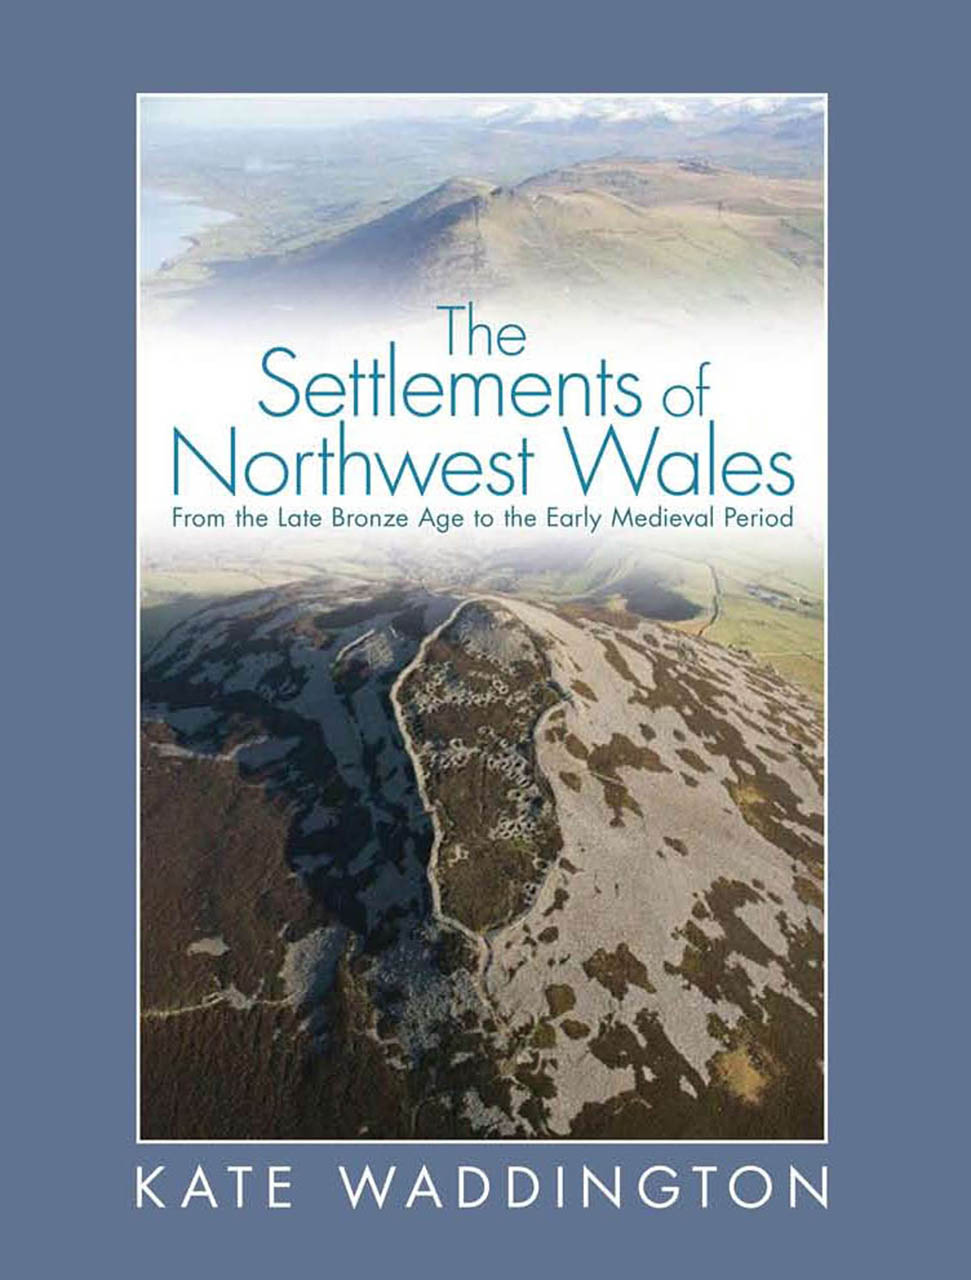 The Settlements of Northwest Wales